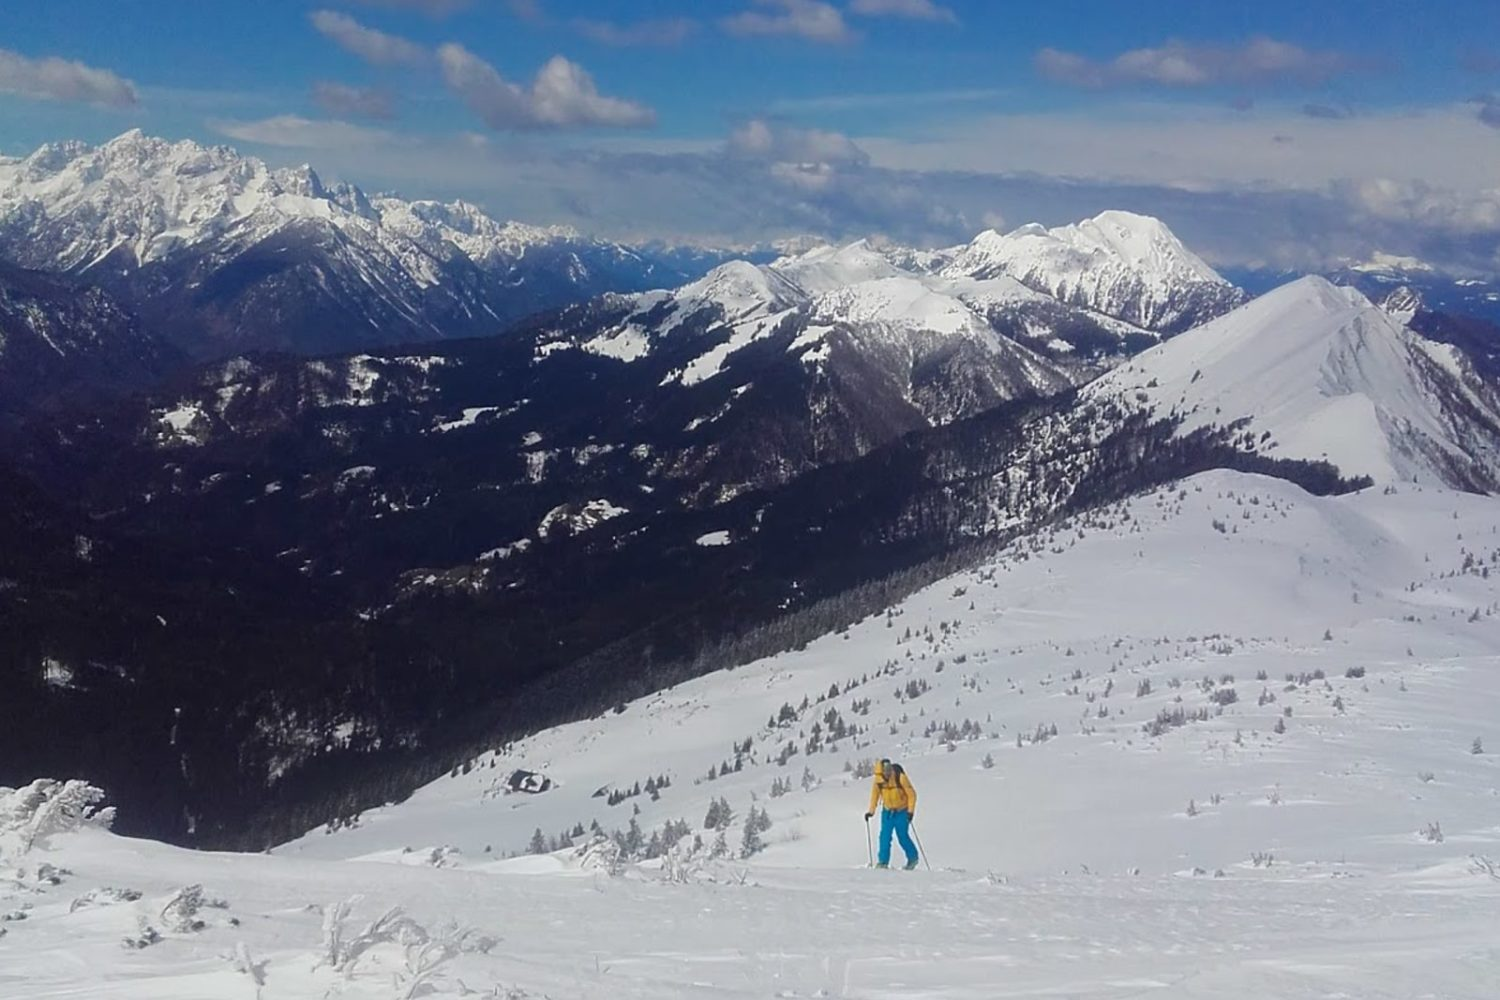 Ski touring in Slovenija